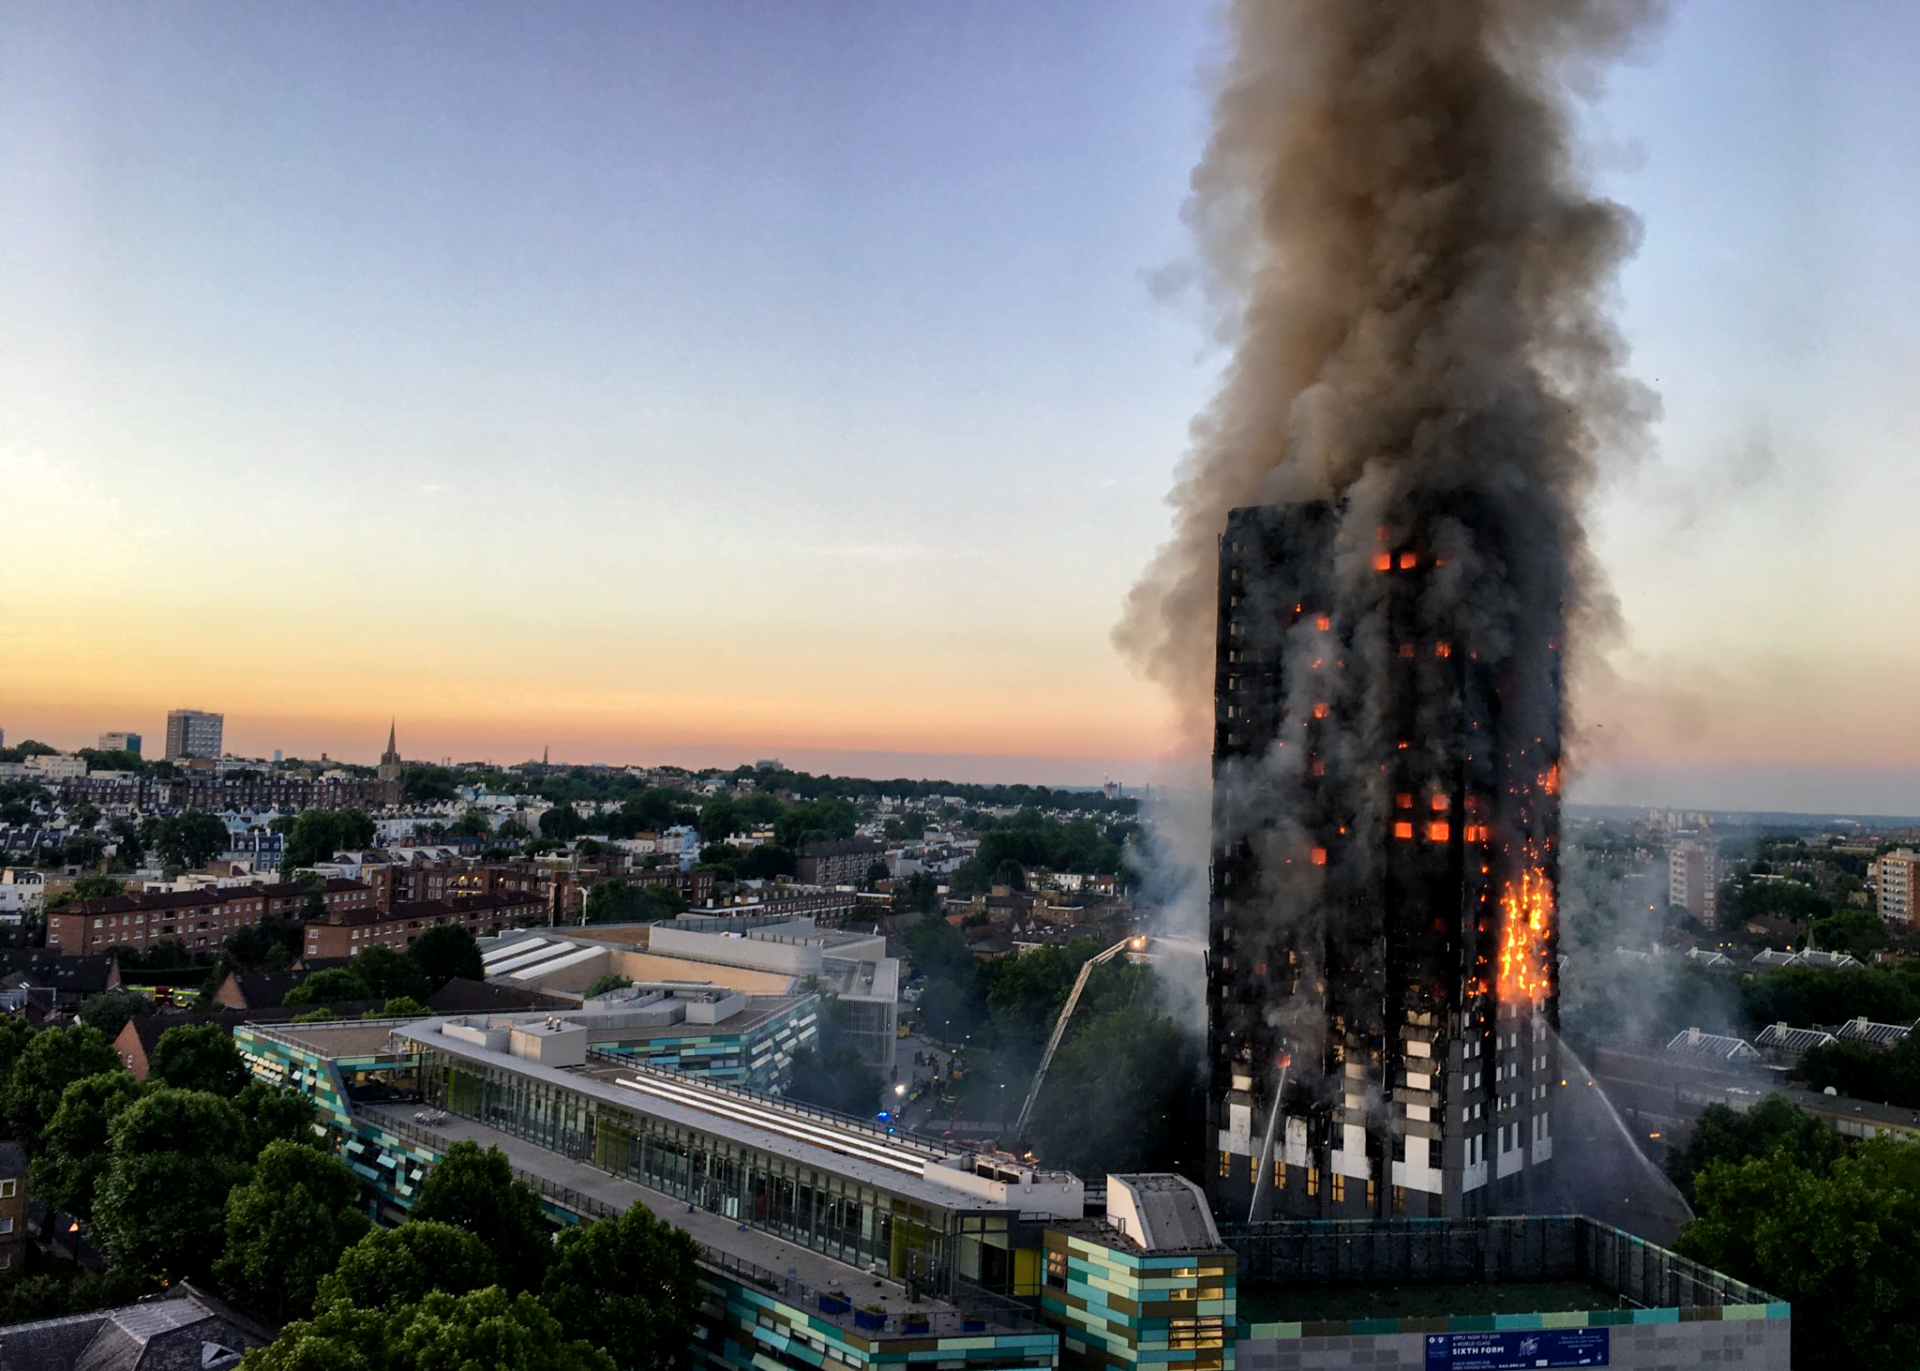 Jasmin Holley: The Grenfell Towers